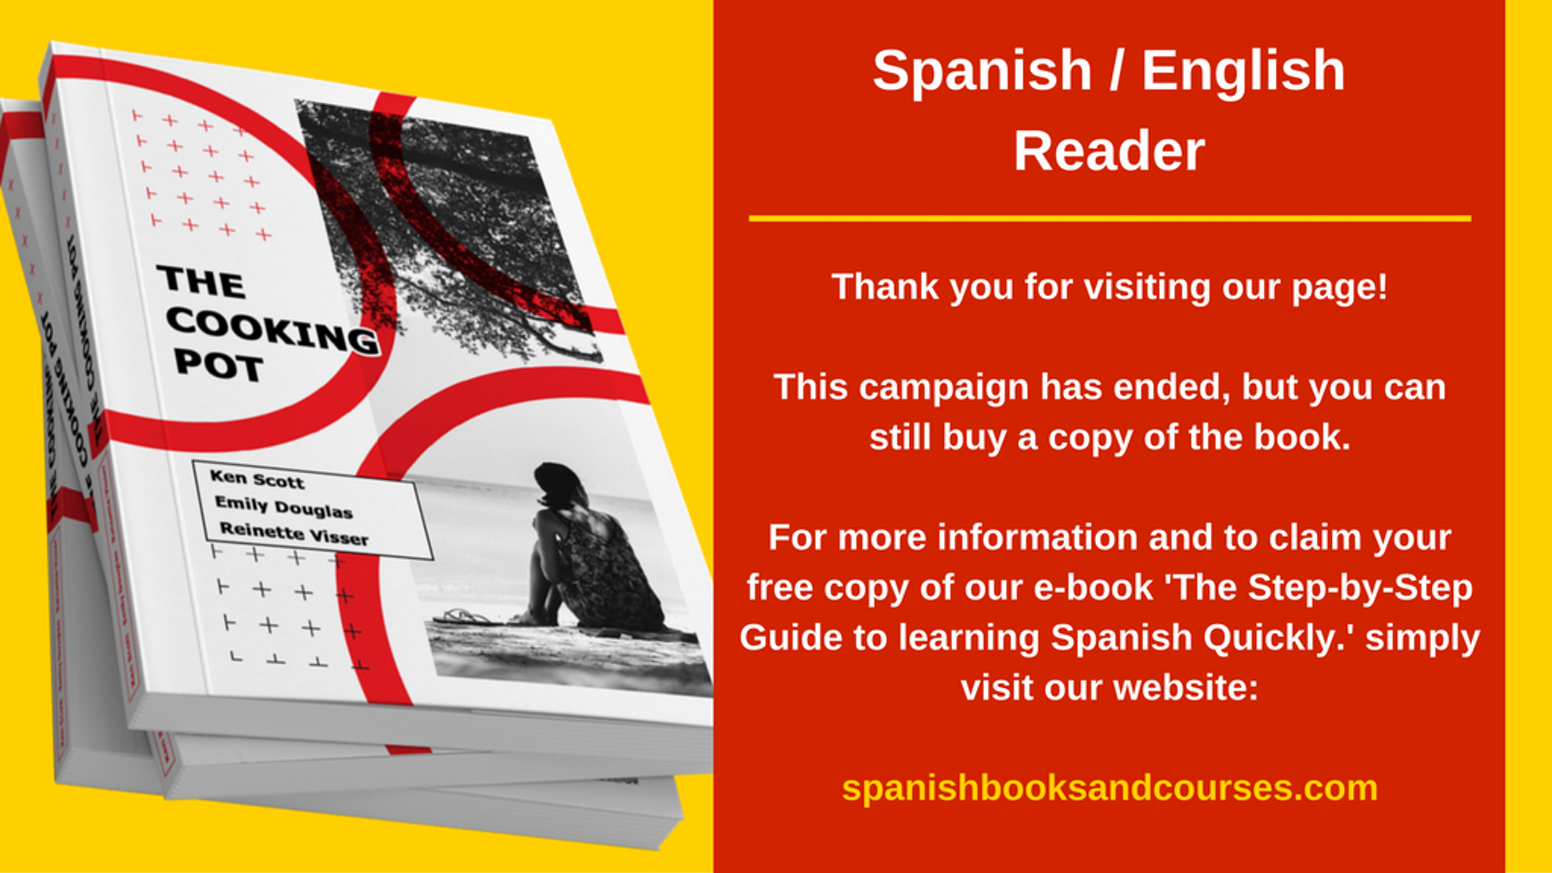 Spanish to english - This Is A Cosy Mystery Written In Both Spanish And English So That We Can Read